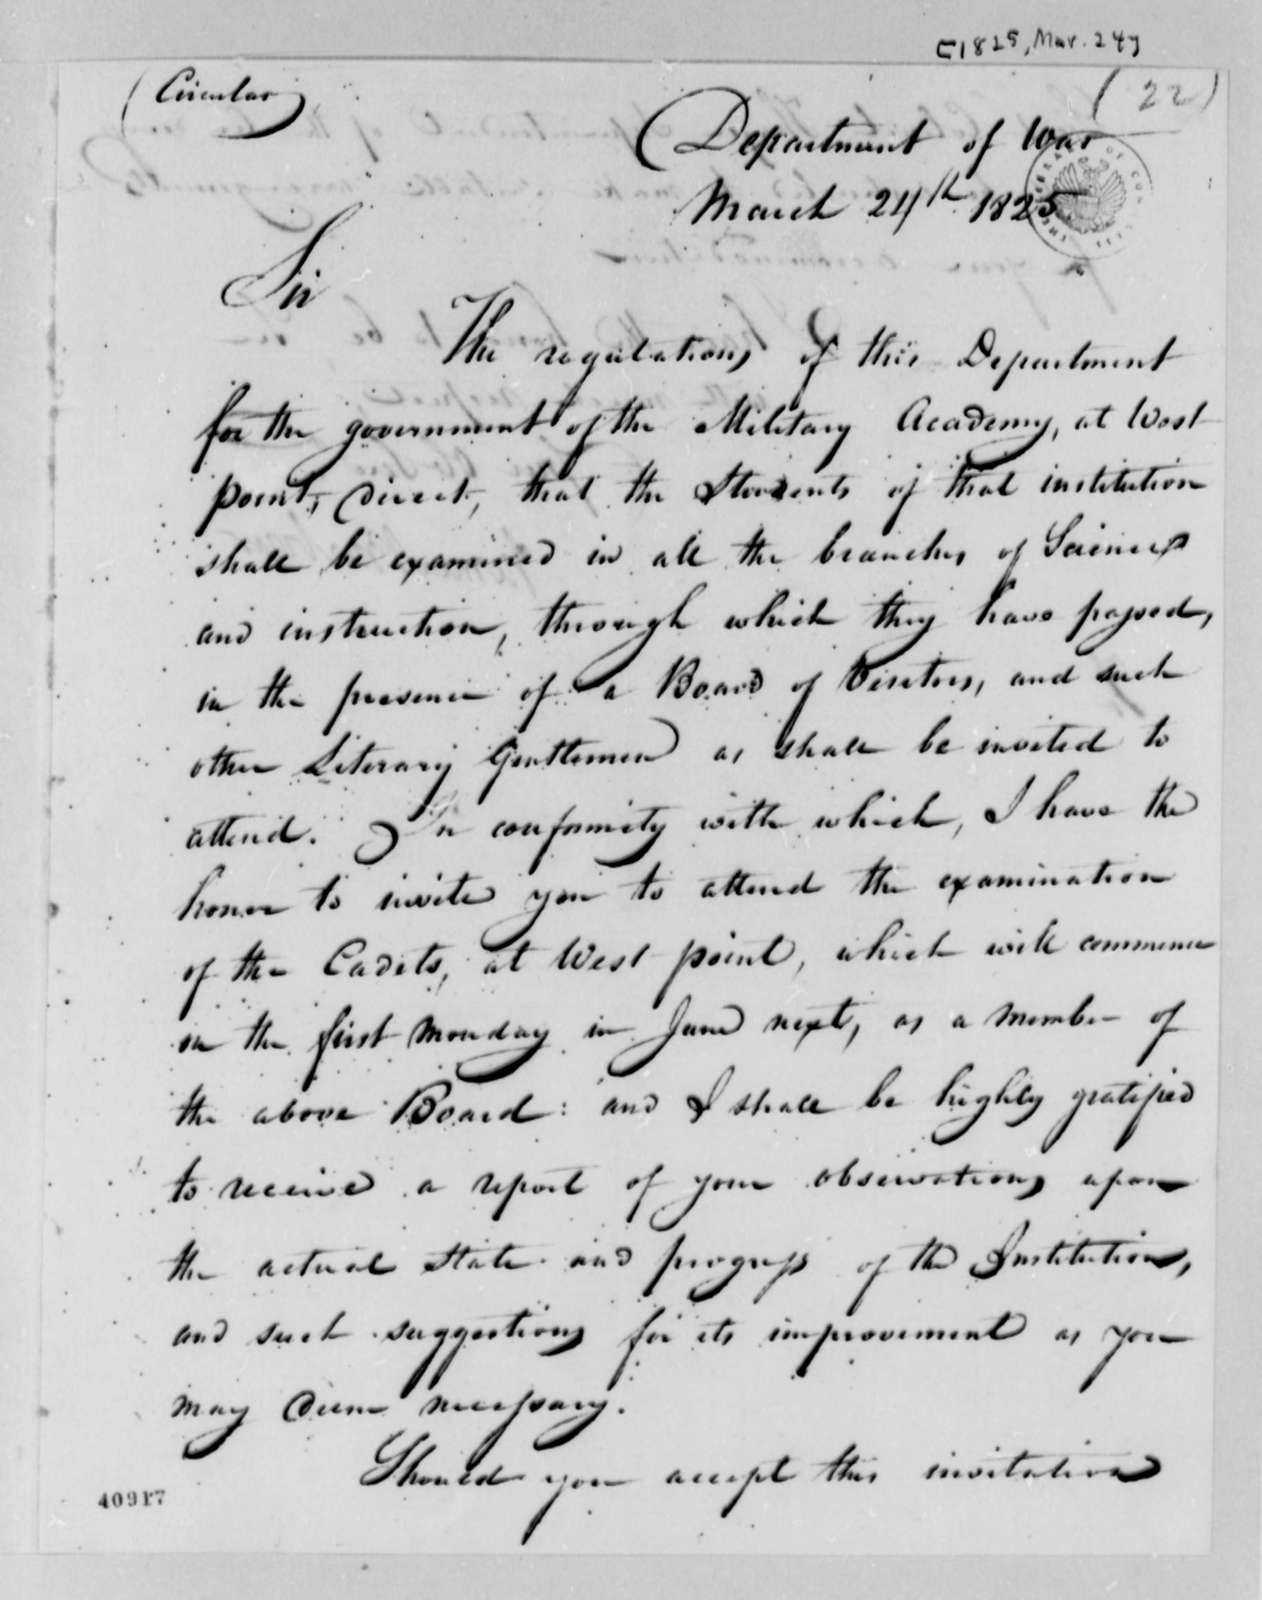 James Barbour to Thomas Jefferson, March 24, 1825, Circular